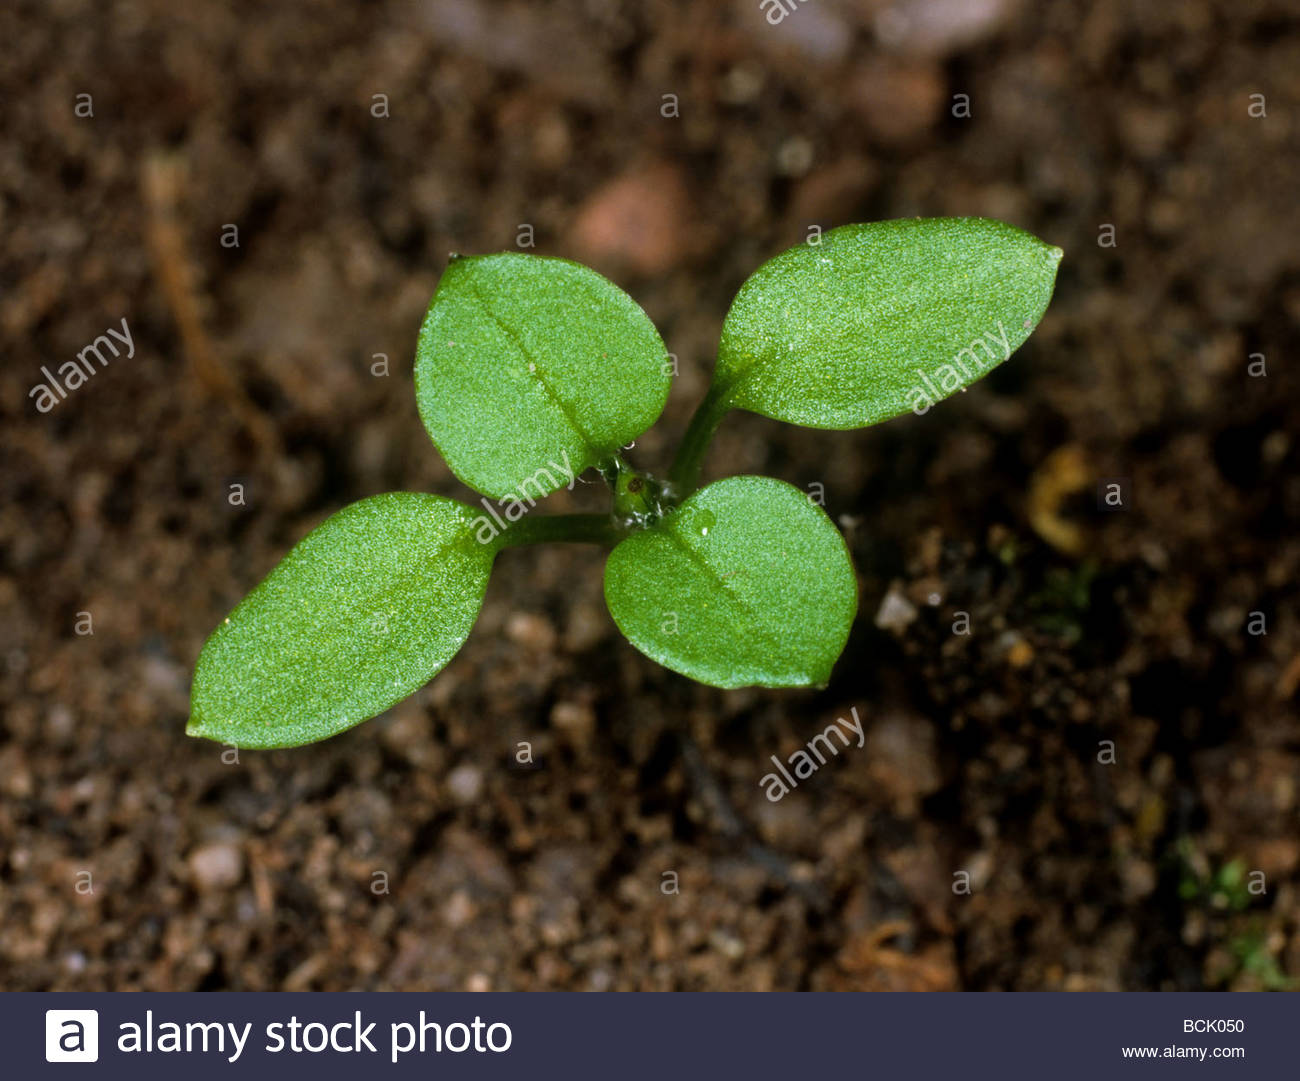 Chickweed Stellaria media seedling with two true leaves forming Stock Photo